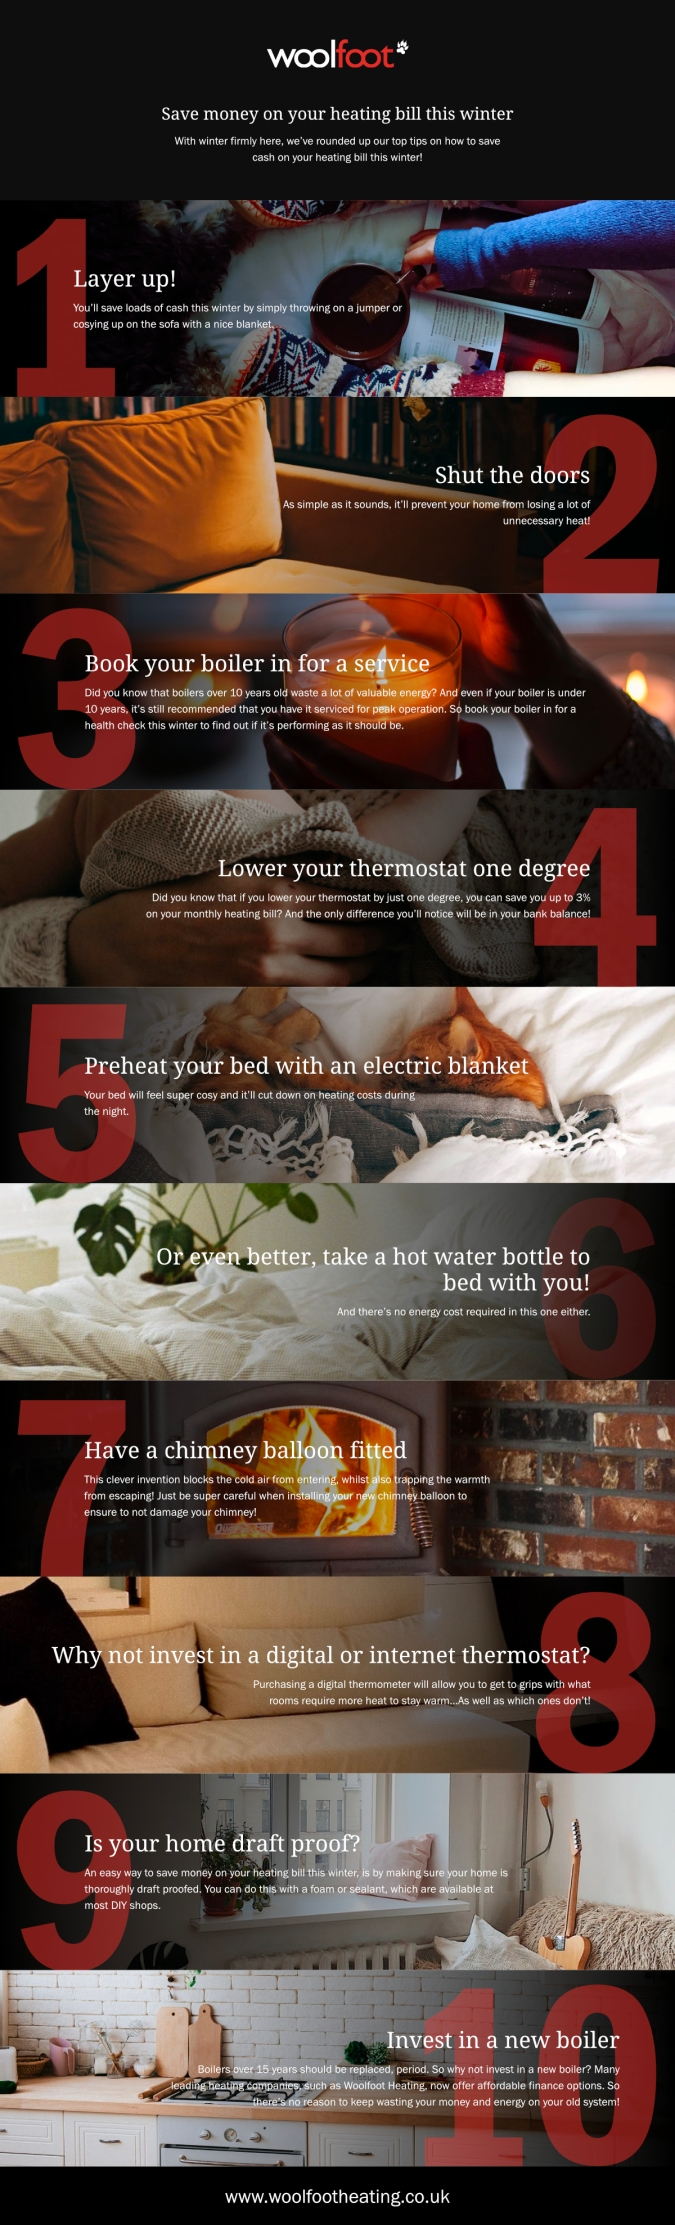 Stay Toasty: How To Save Money On Your Heating Bill by Fashion Du Jour LDN. Infographic by Woolfoot Heating